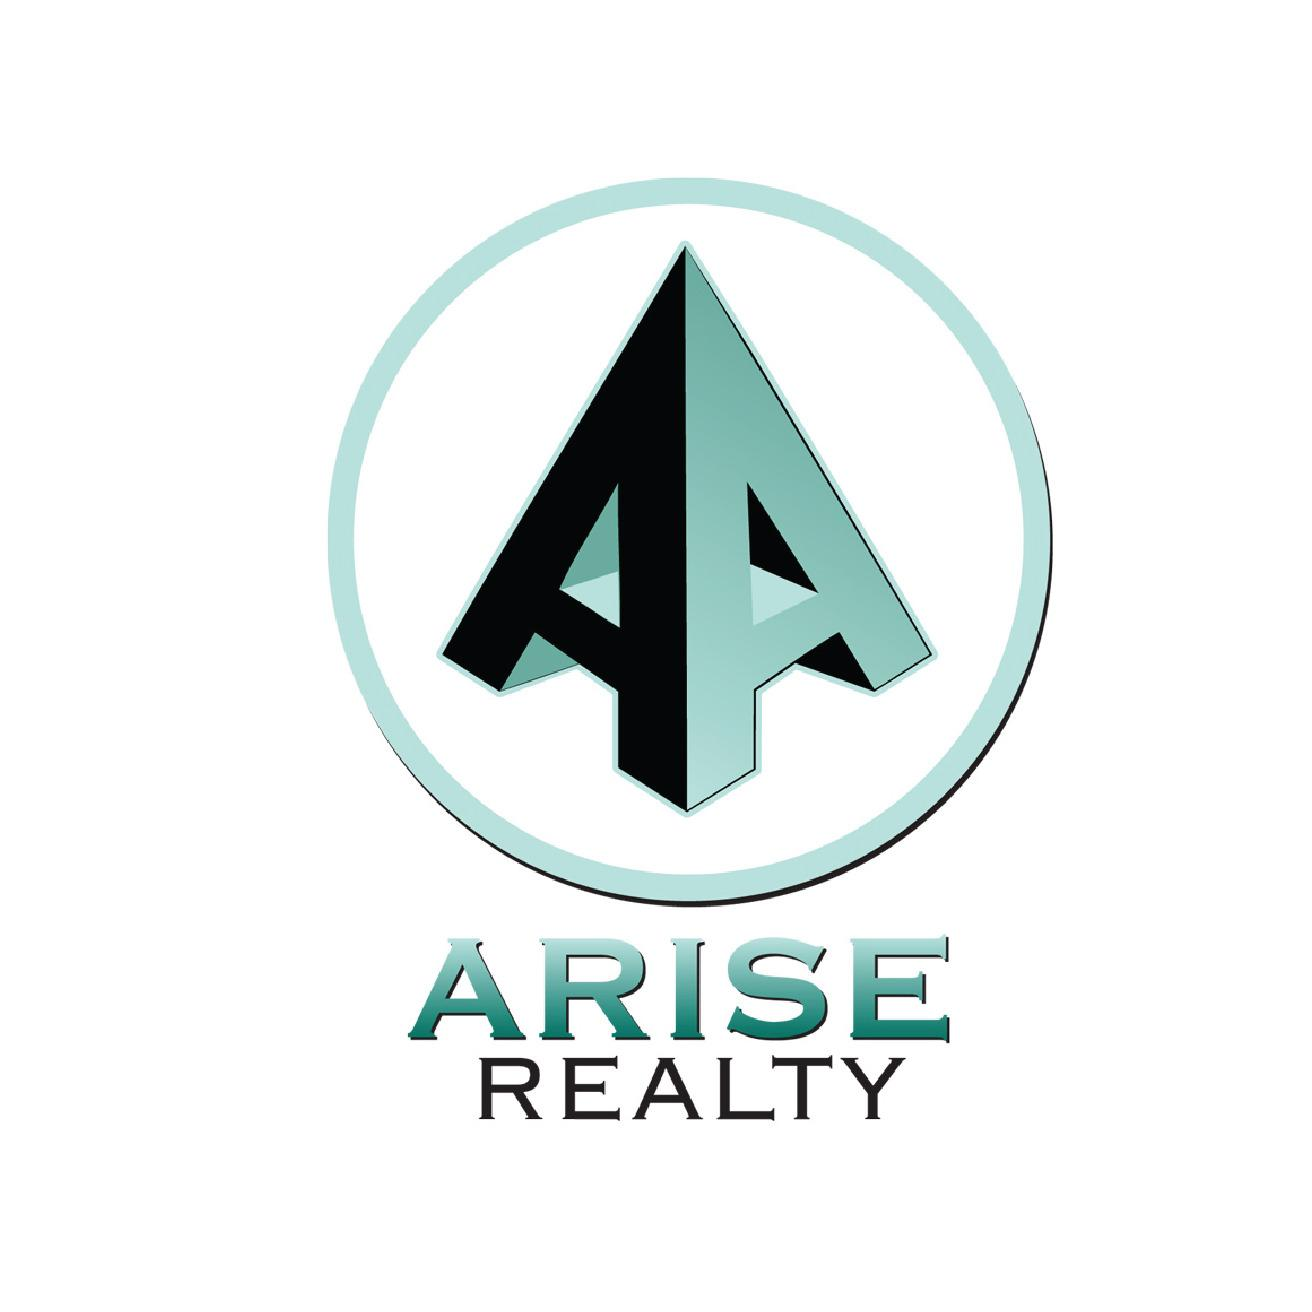 Arise Realty